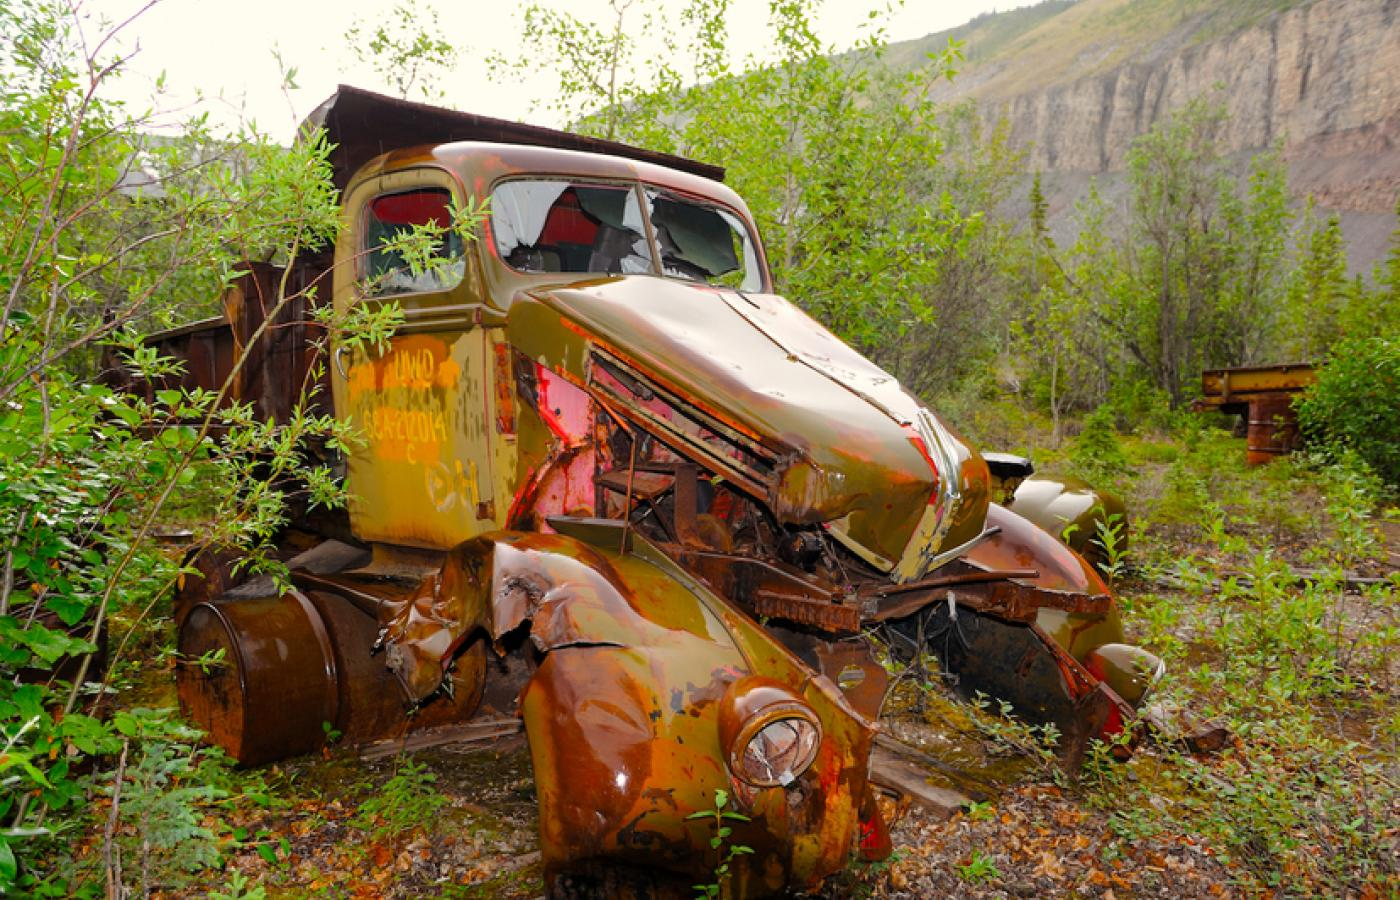 Old trucks from the 1940s line the Canol Trail, in Canada's Northwest Territories, relics from the era the road went in.